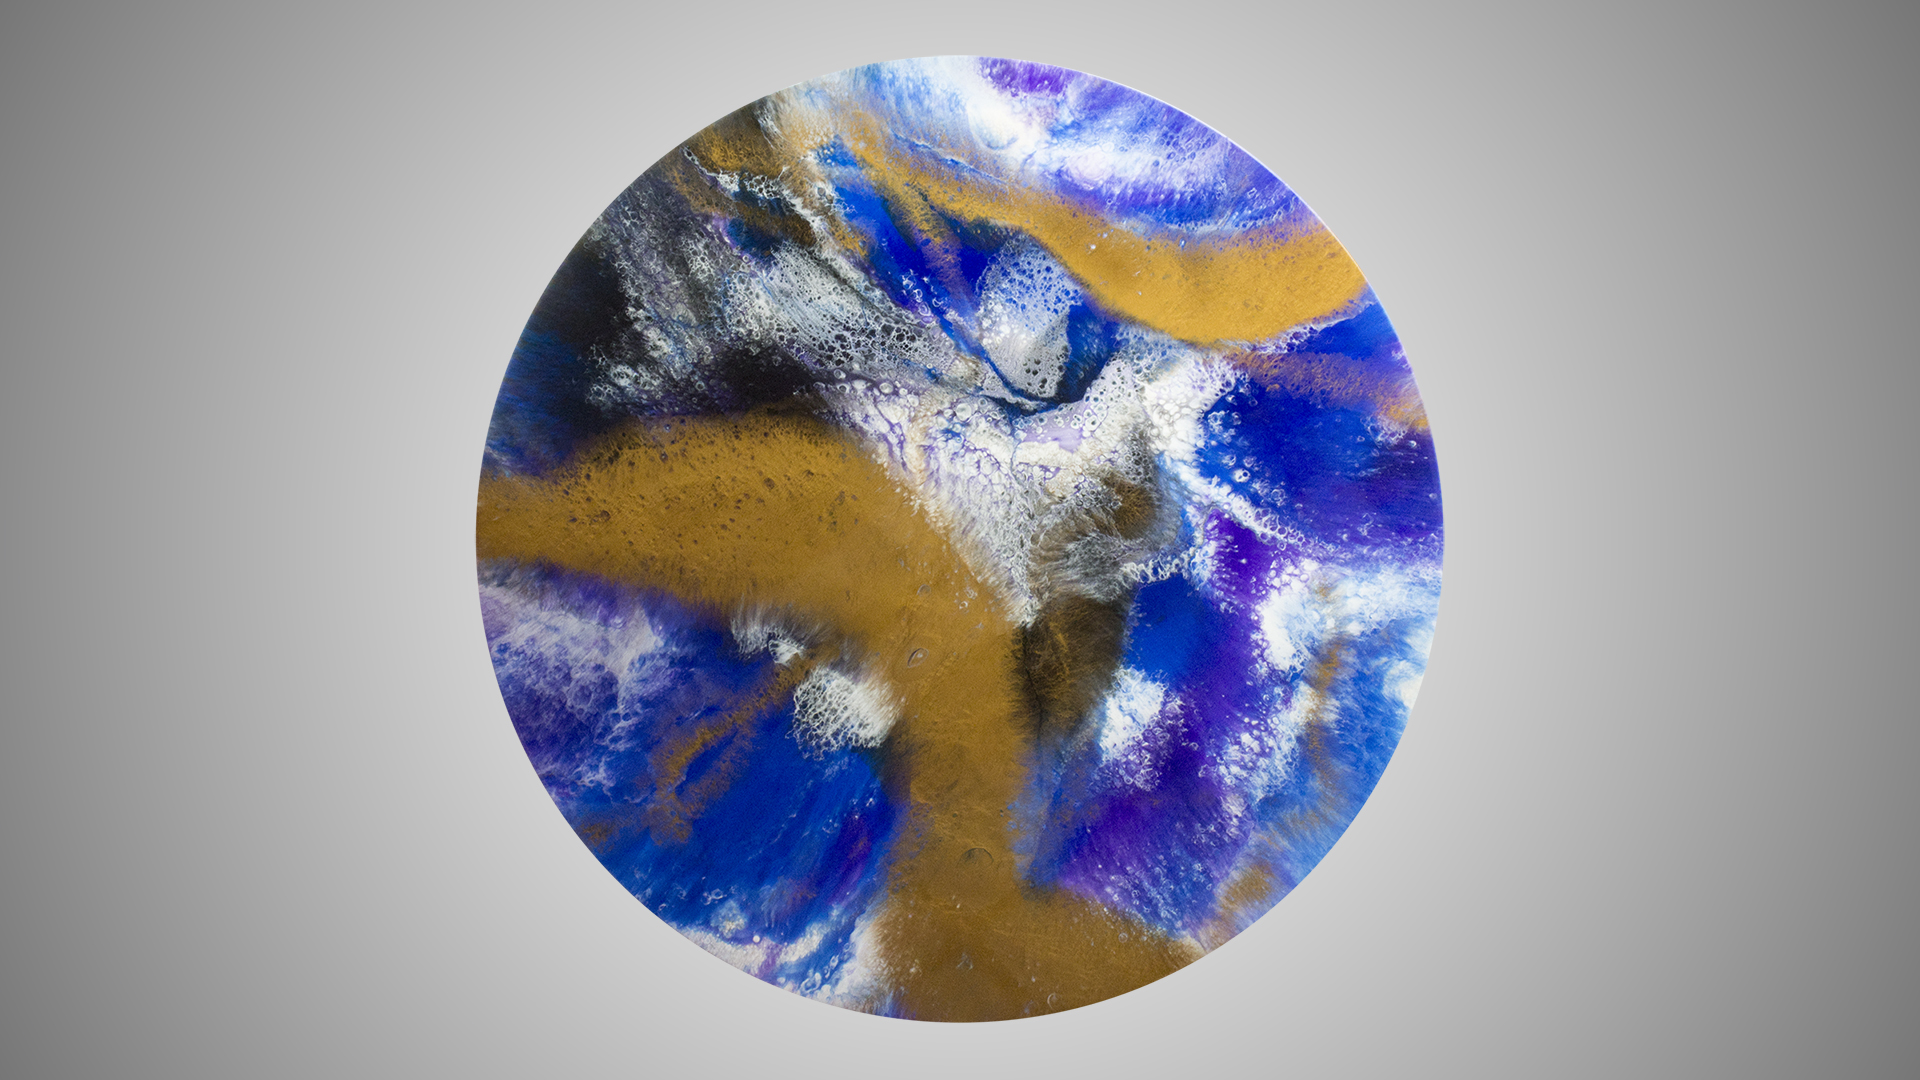 Abyss - Resin Art, Round